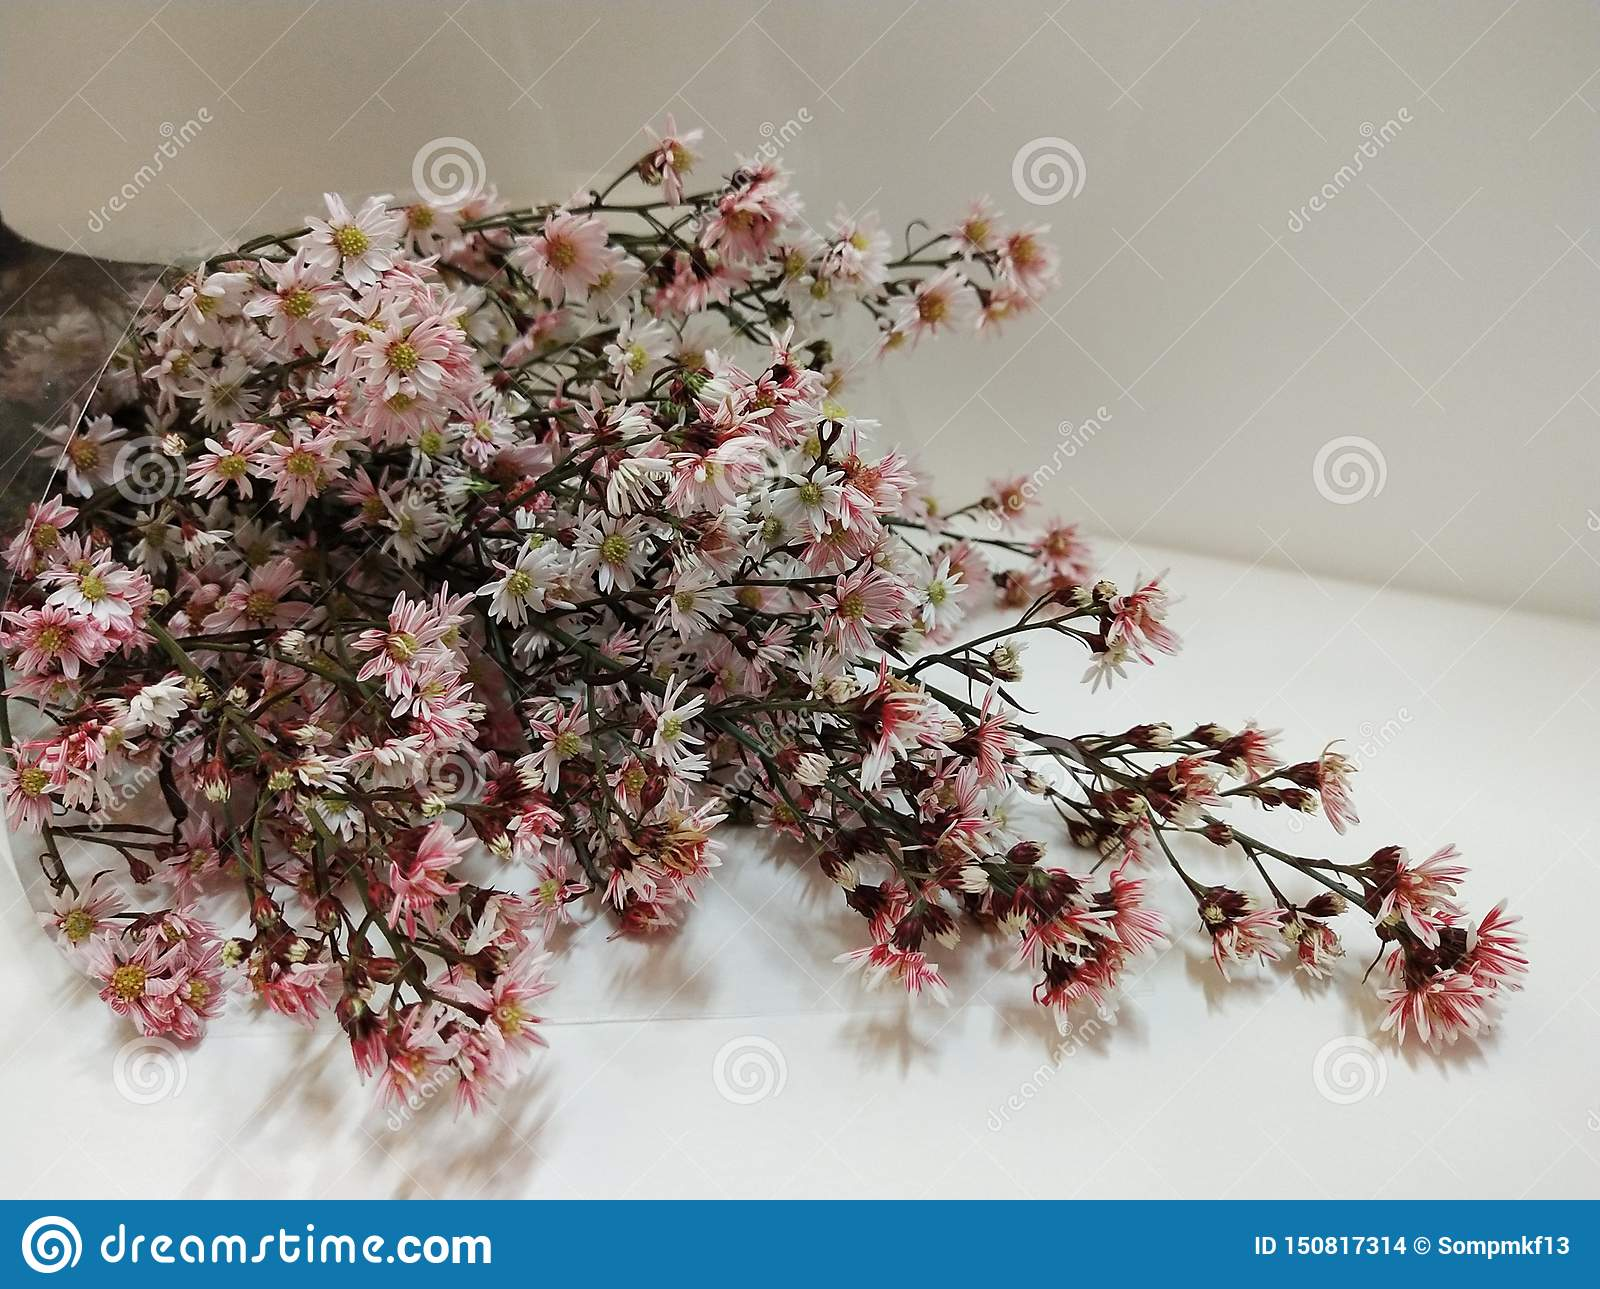 bunch of dried flowers on white background